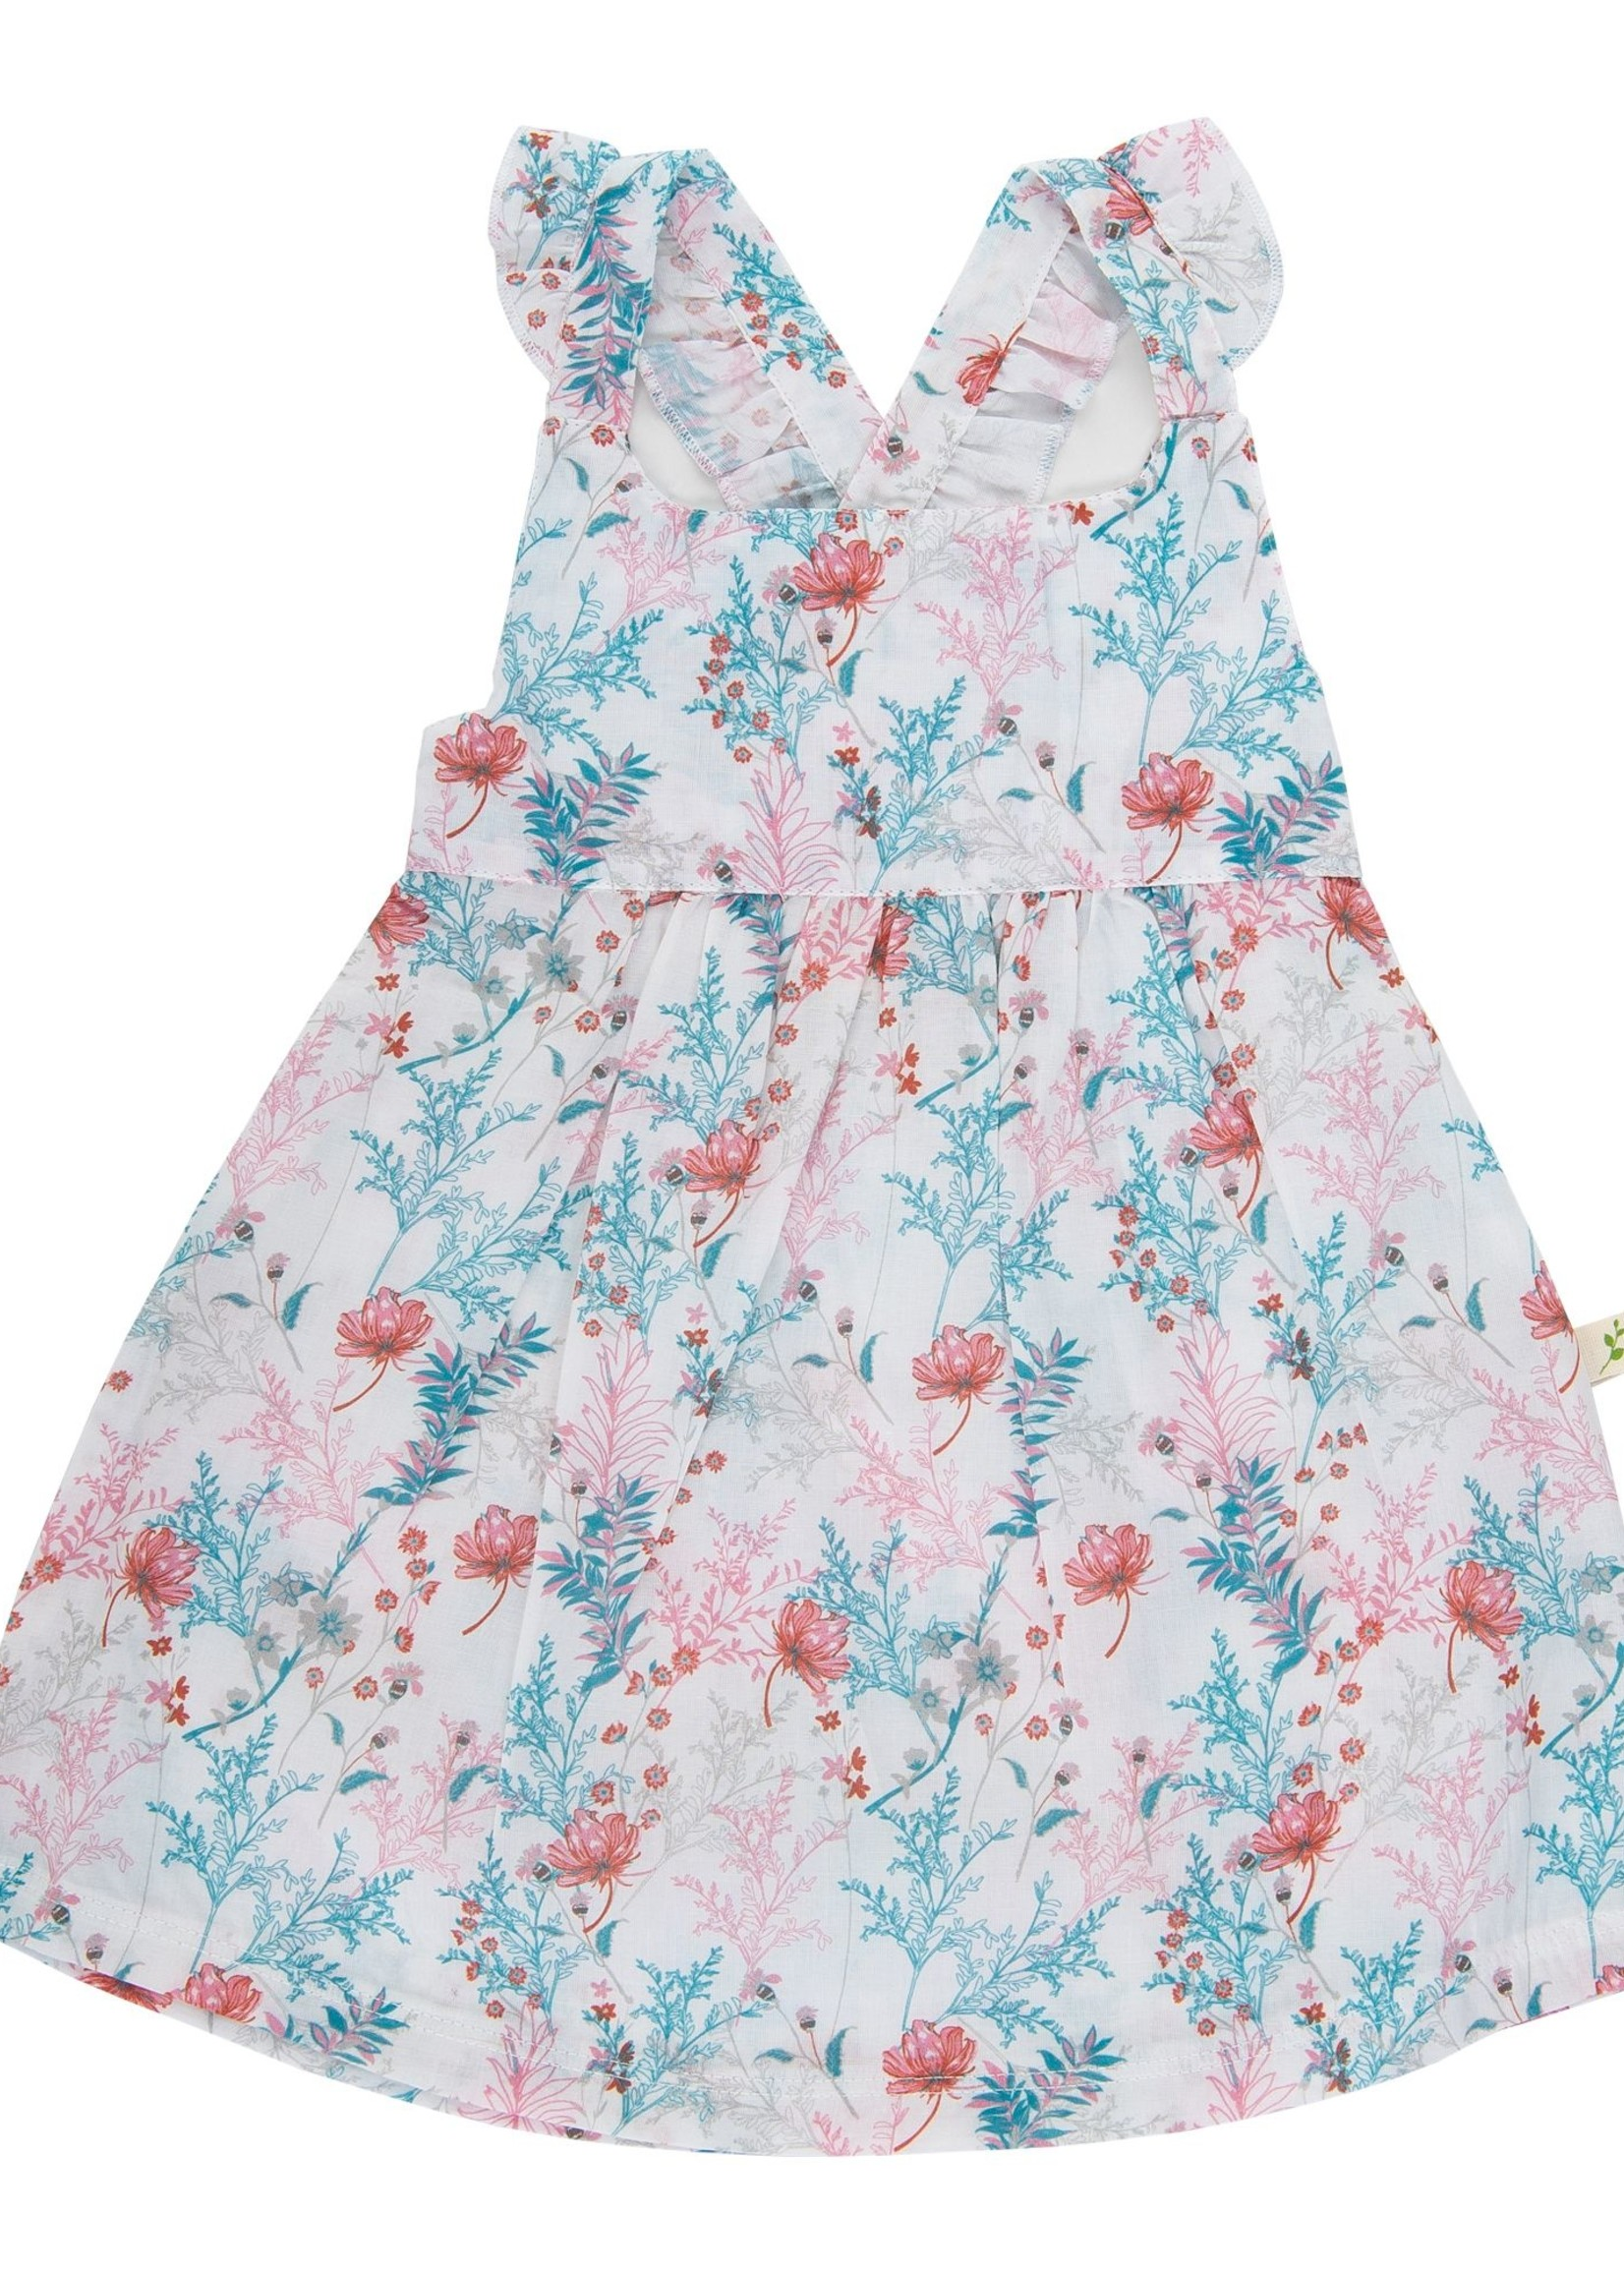 Tiny twig Wildflowers sundress and bloomers